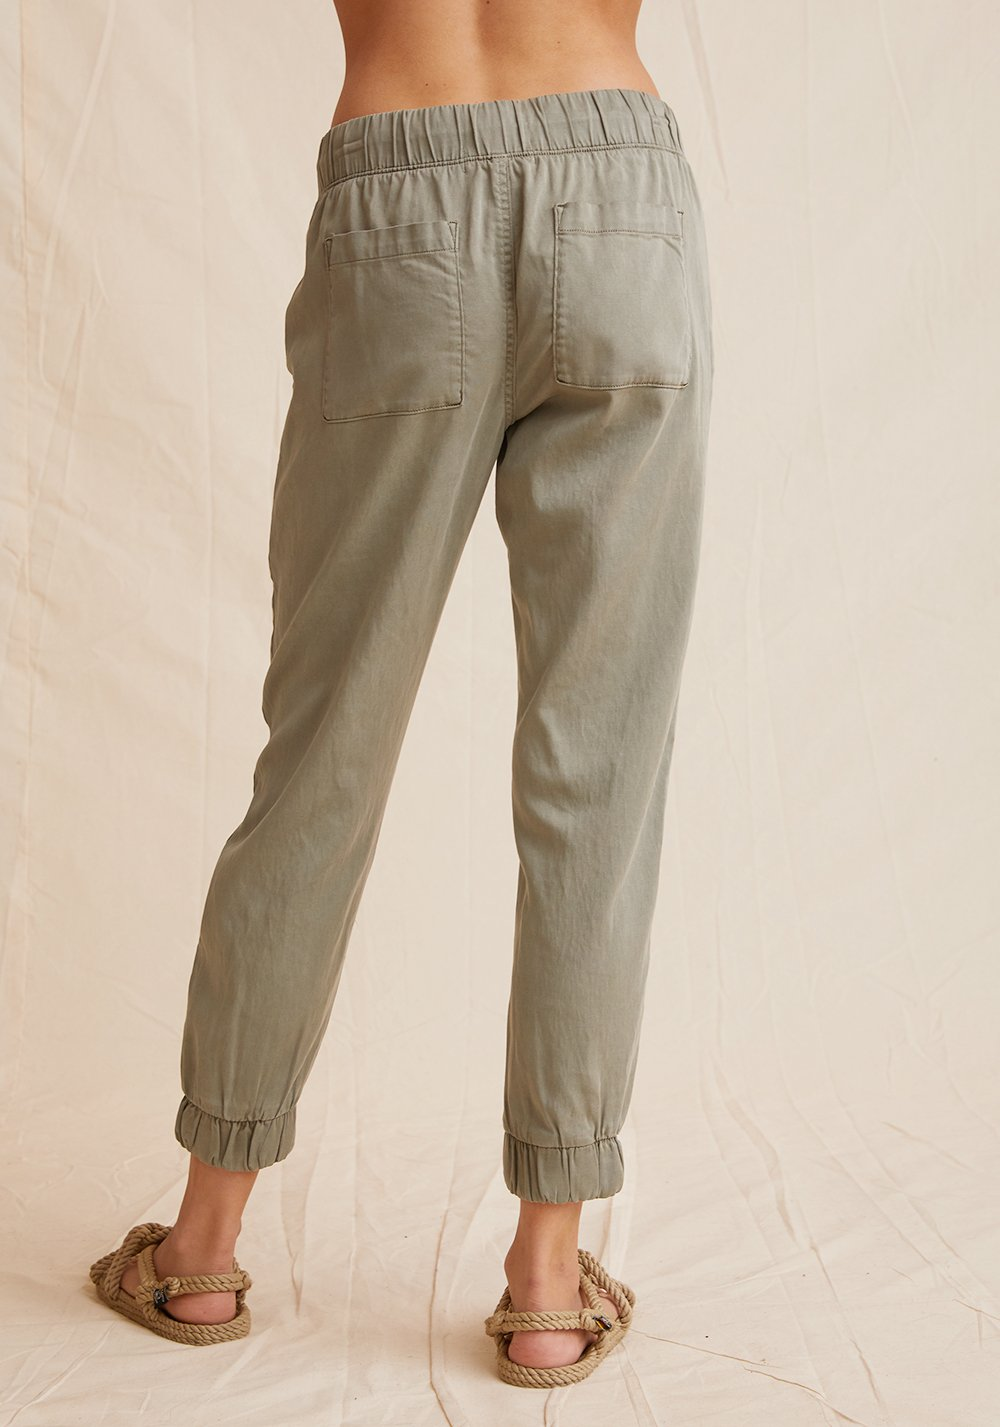 Pocket jogger without rips - soft army